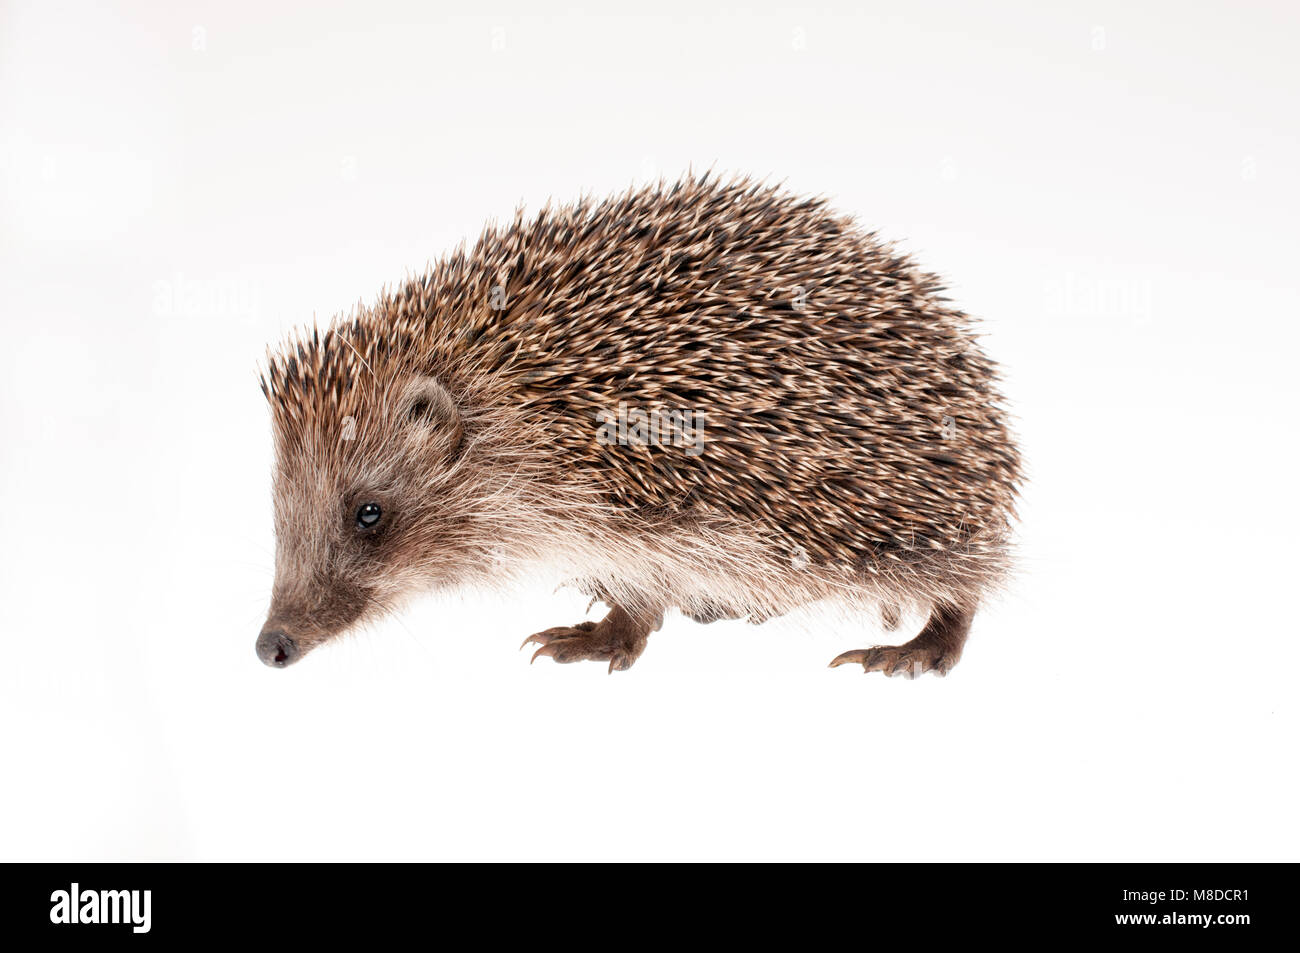 Small hedgehog on white background - studio shot - Stock Image